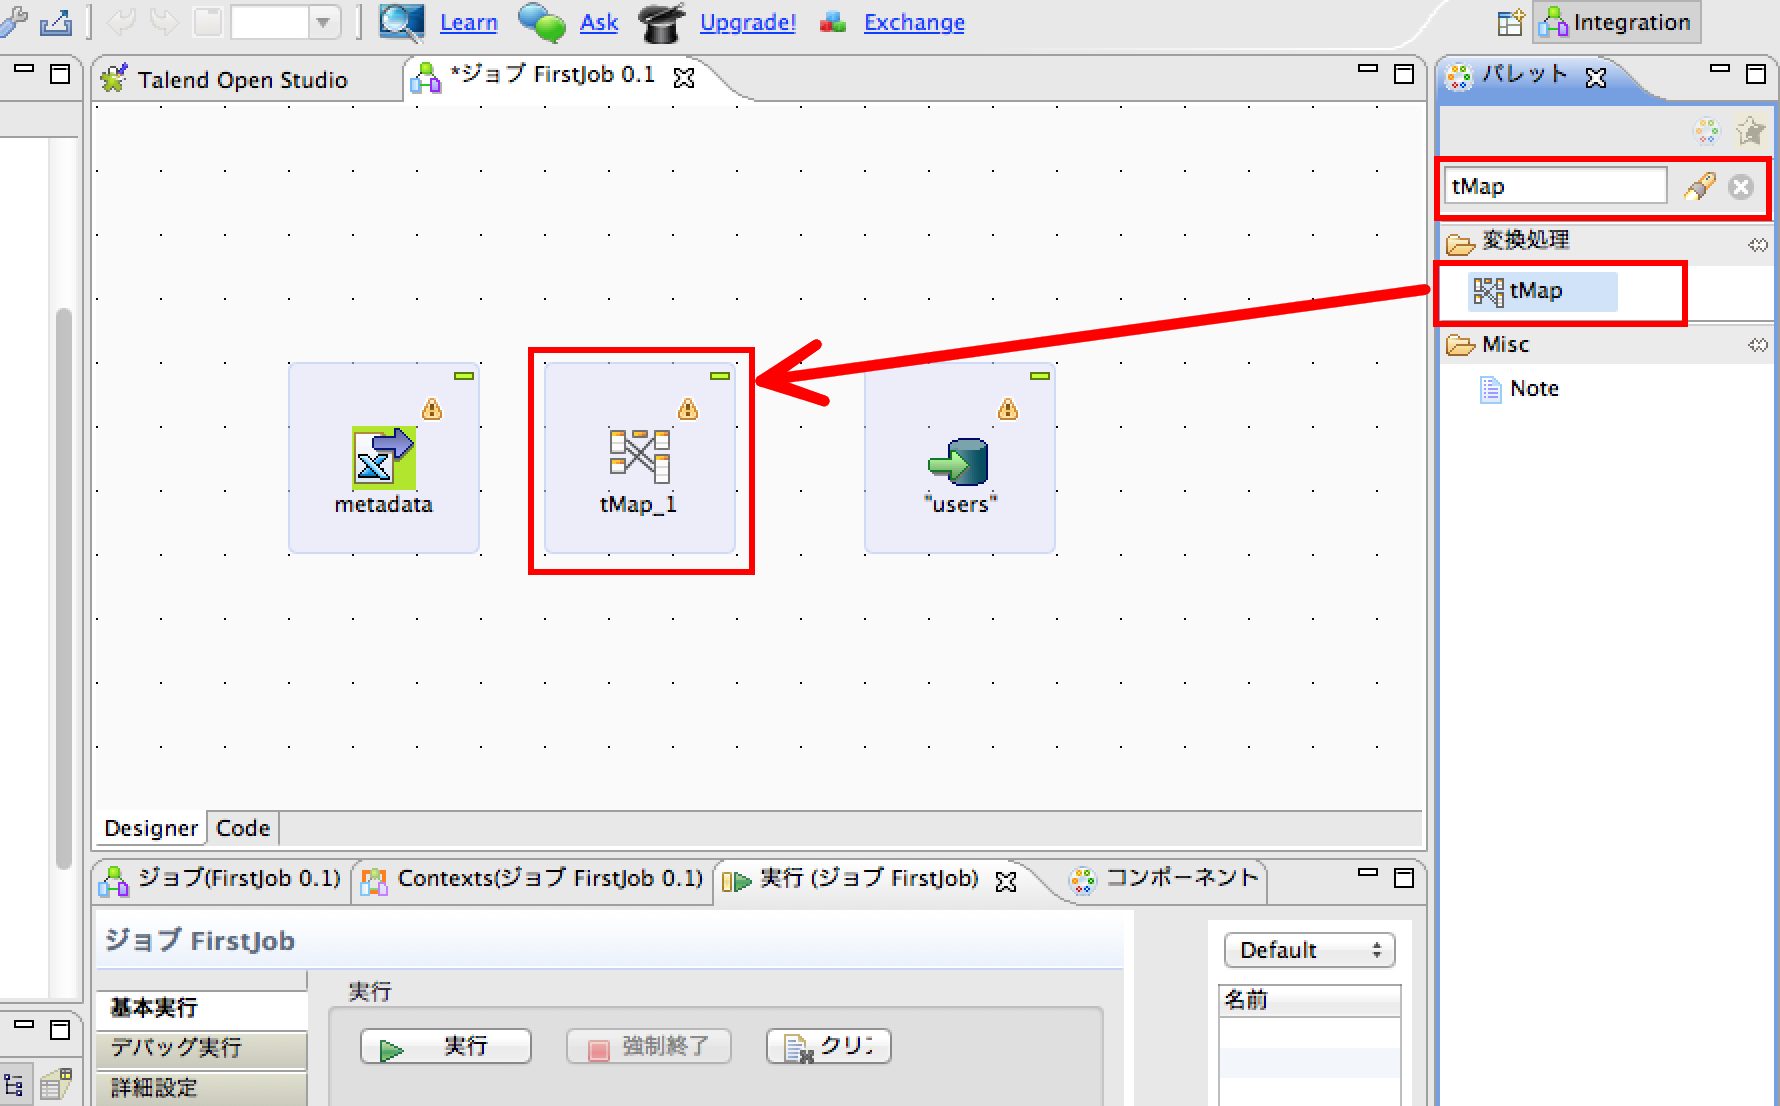 Talend-job-drop-tMap